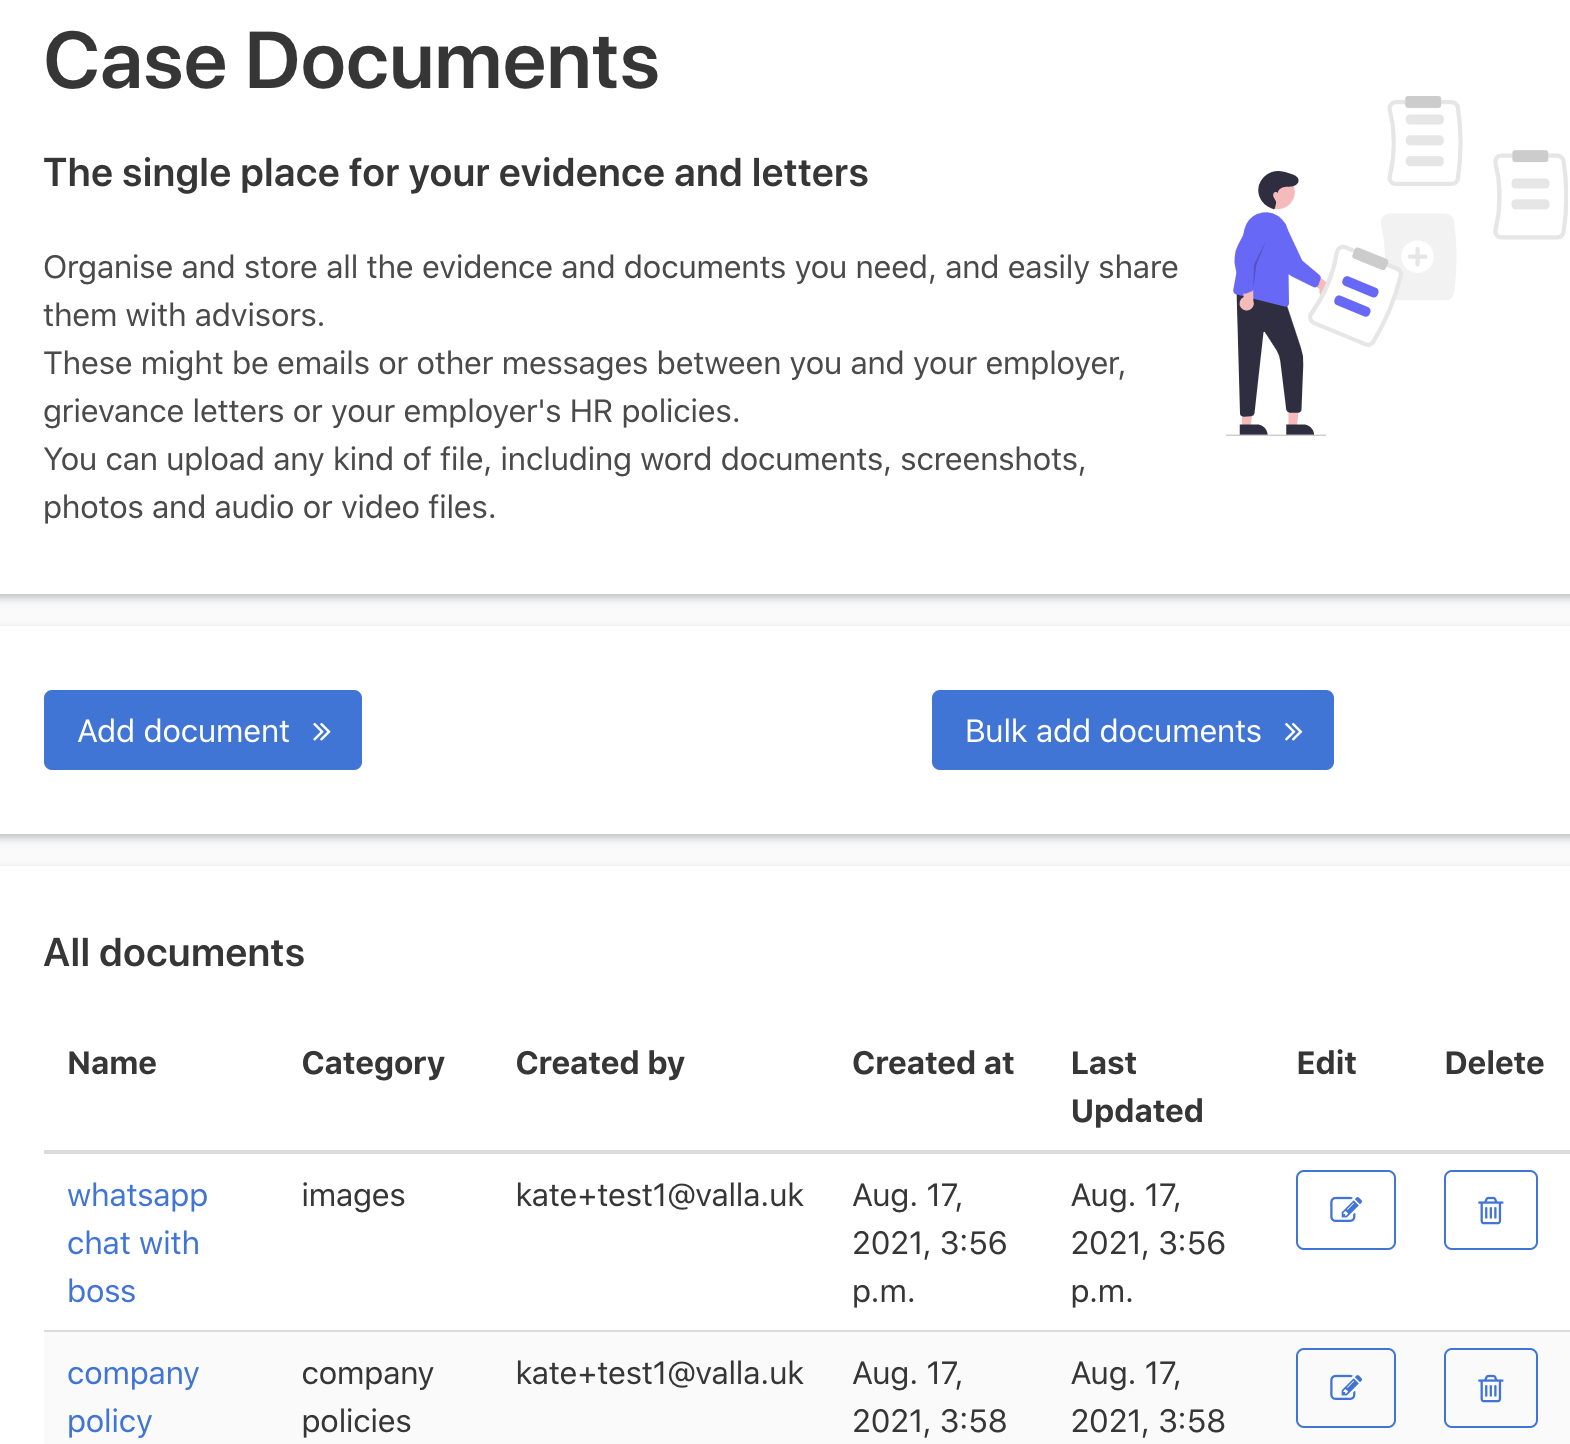 Screenshot from the Valla platform showing 'Case documents: The single place for your letters and documents'